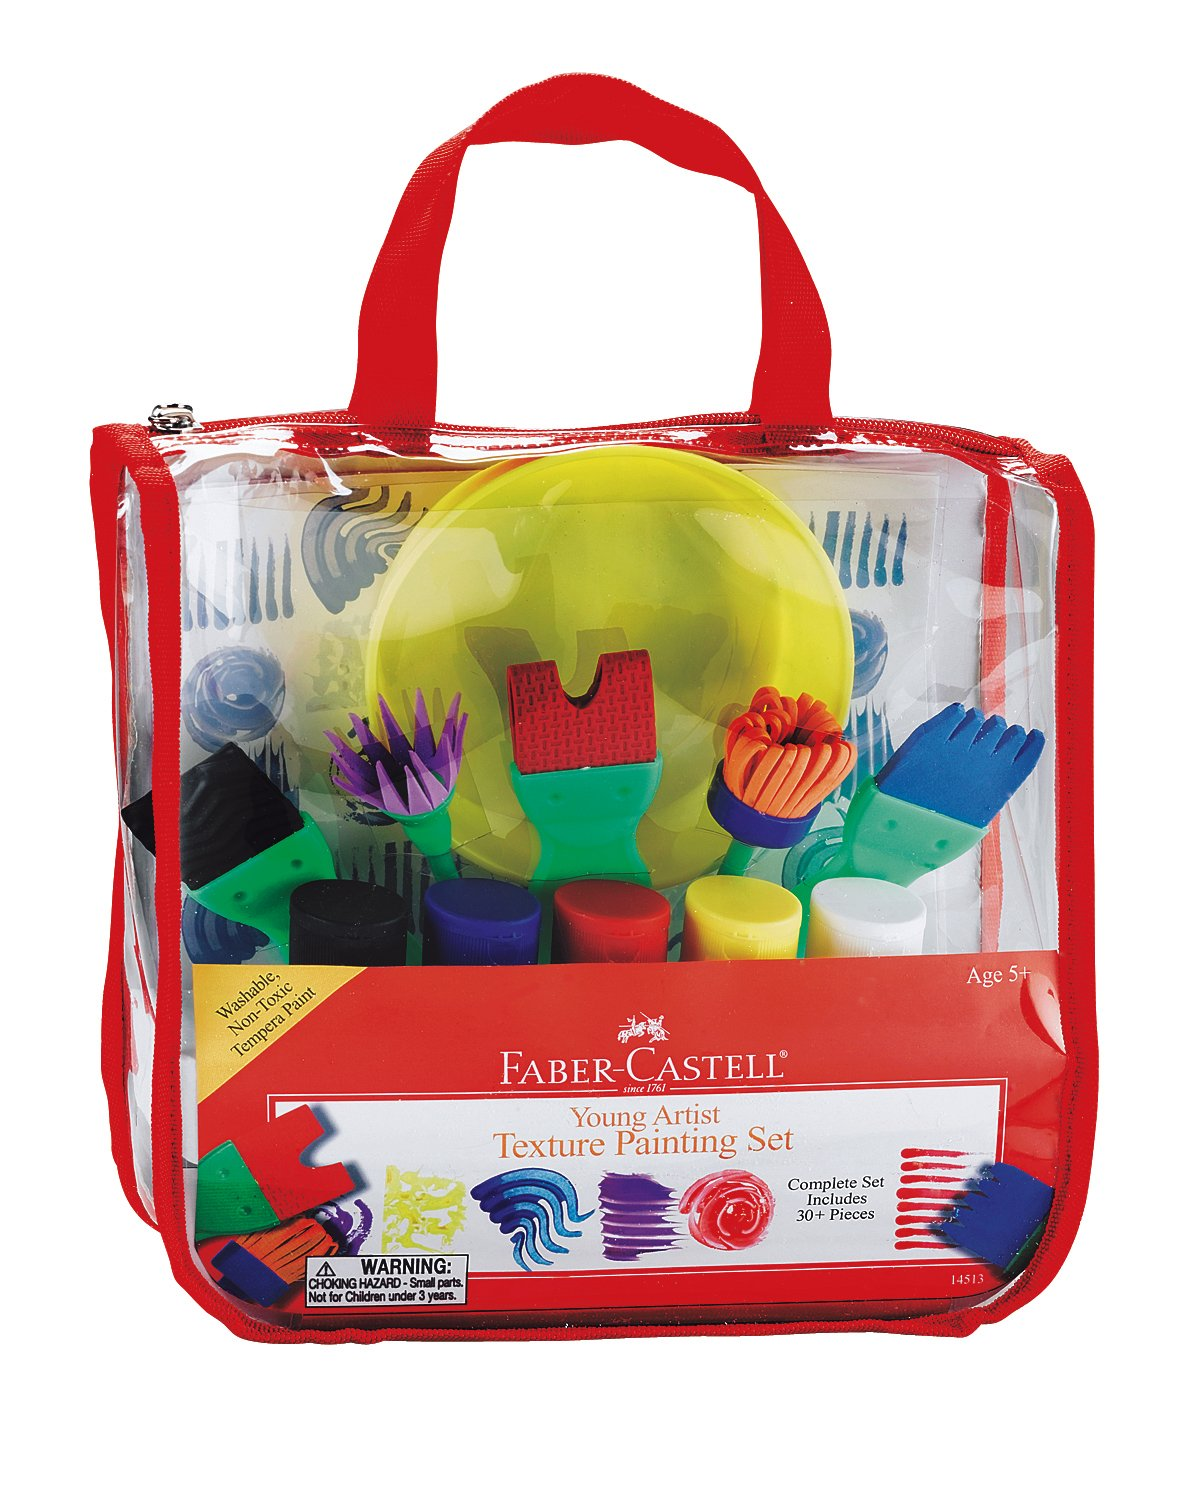 Faber Castell Young Artist Learn to Paint Set - Washable Paint Set for Kids FC14519